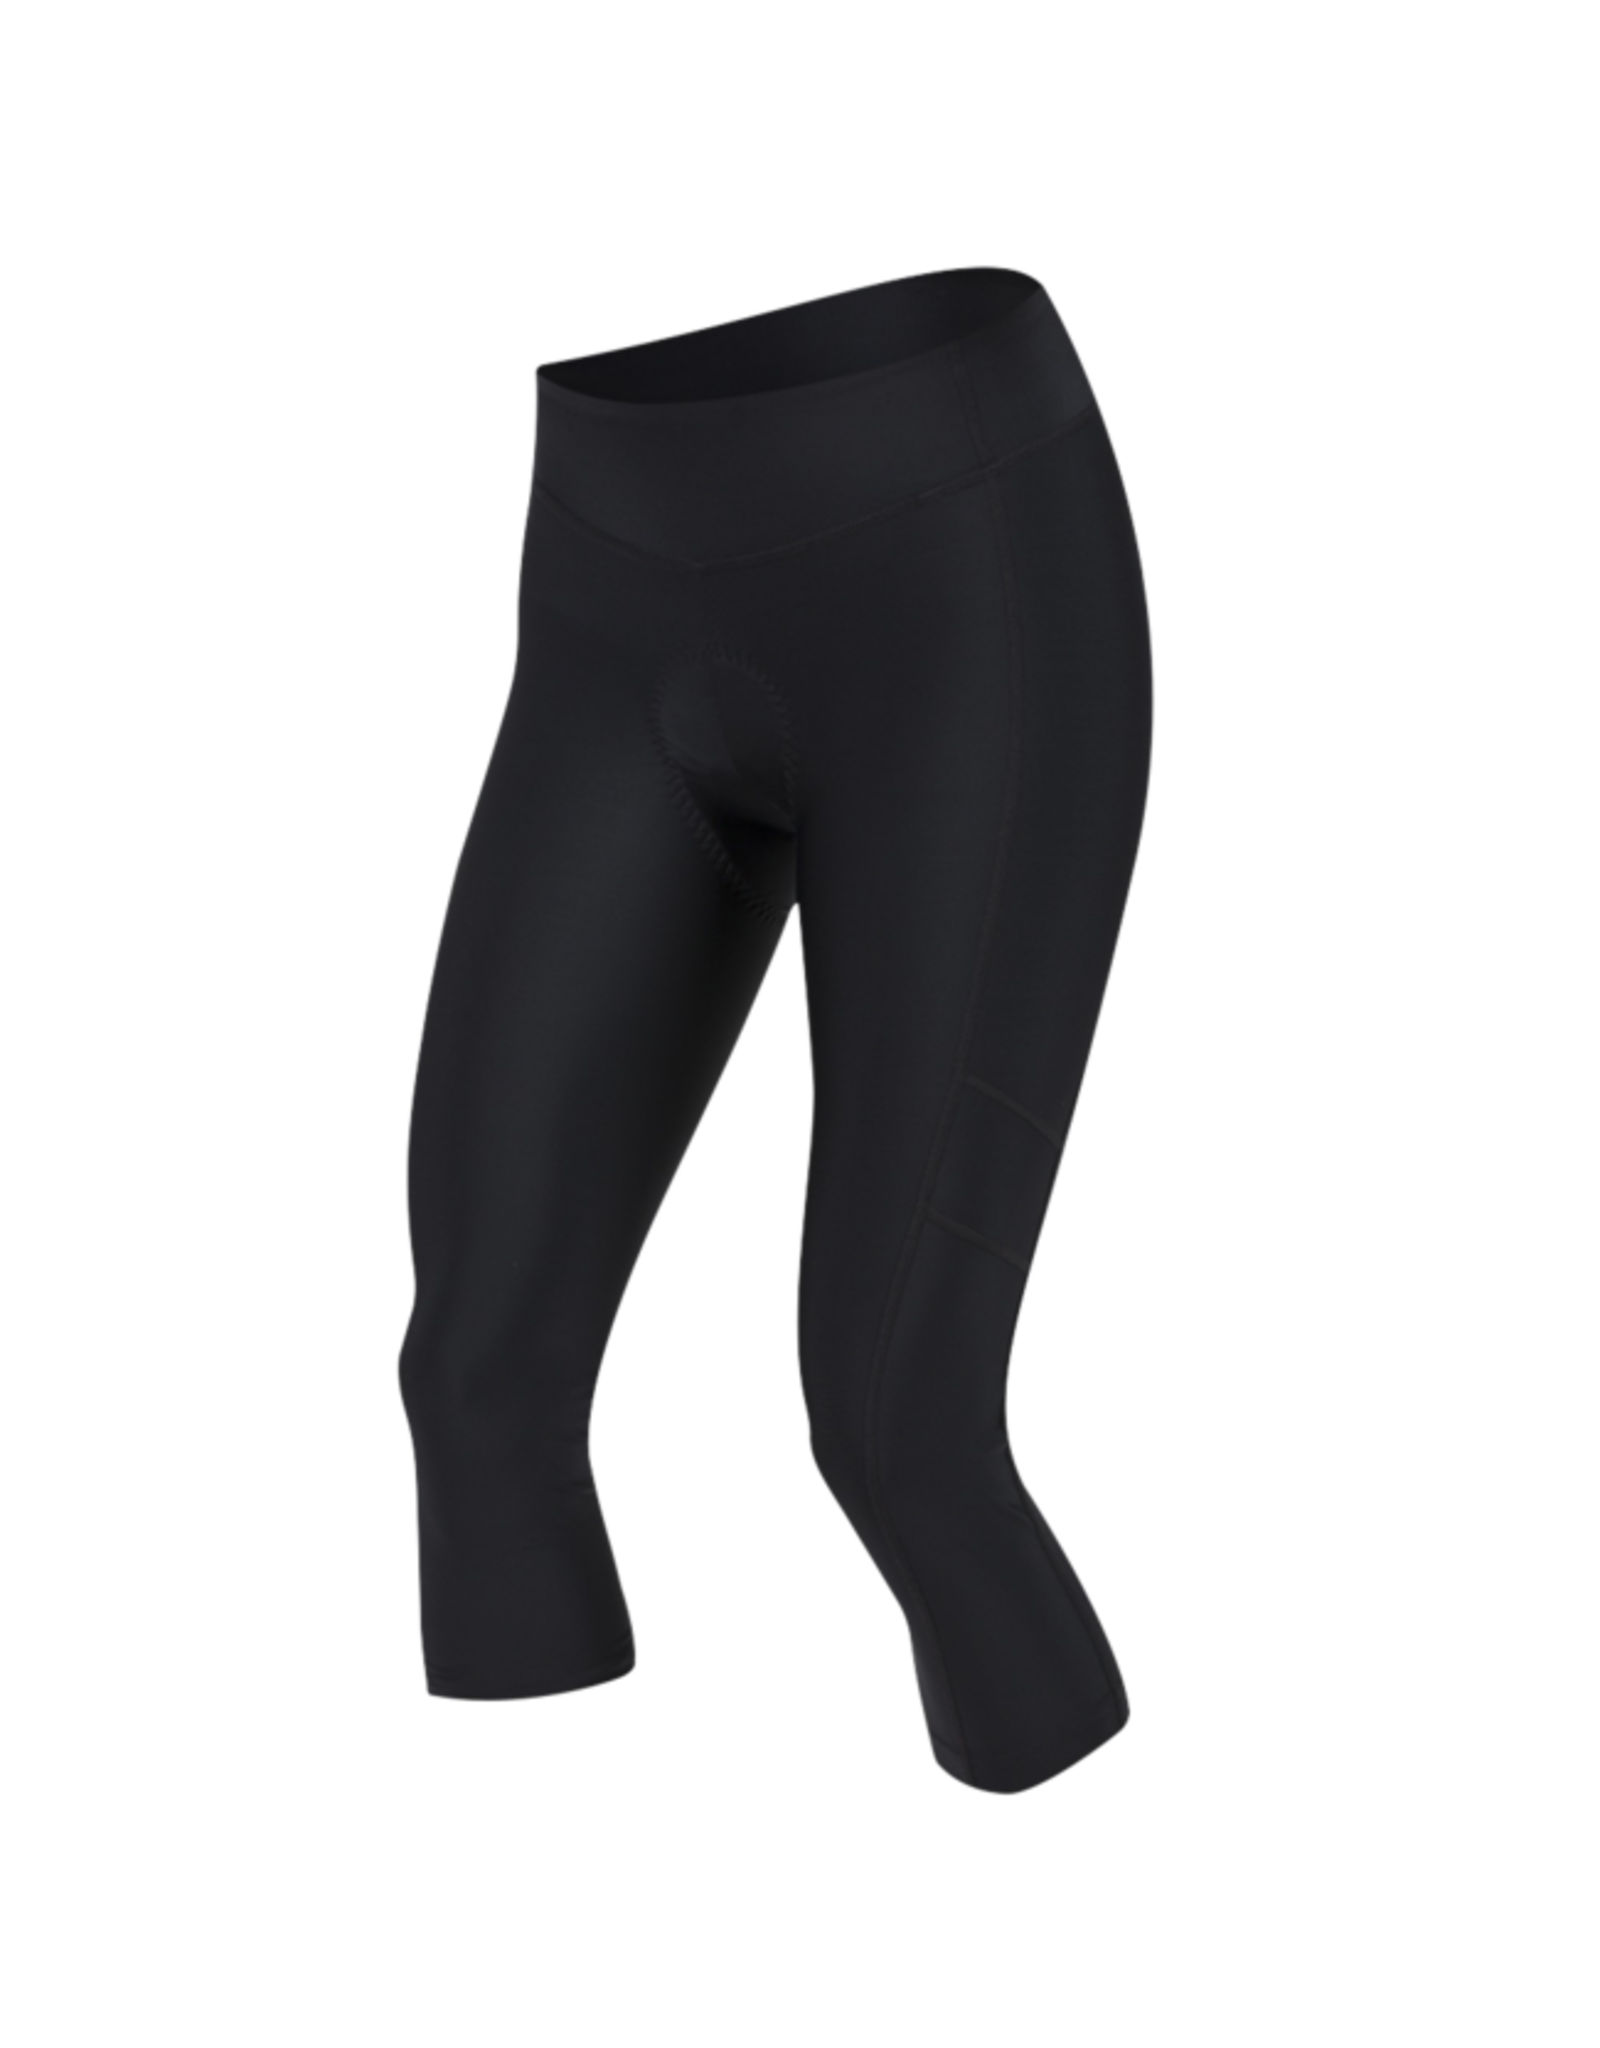 PIZ PEARL IZUMI WMN'S  ESCAPE SUGAR CYC 3/4 TIGHT BLK XS